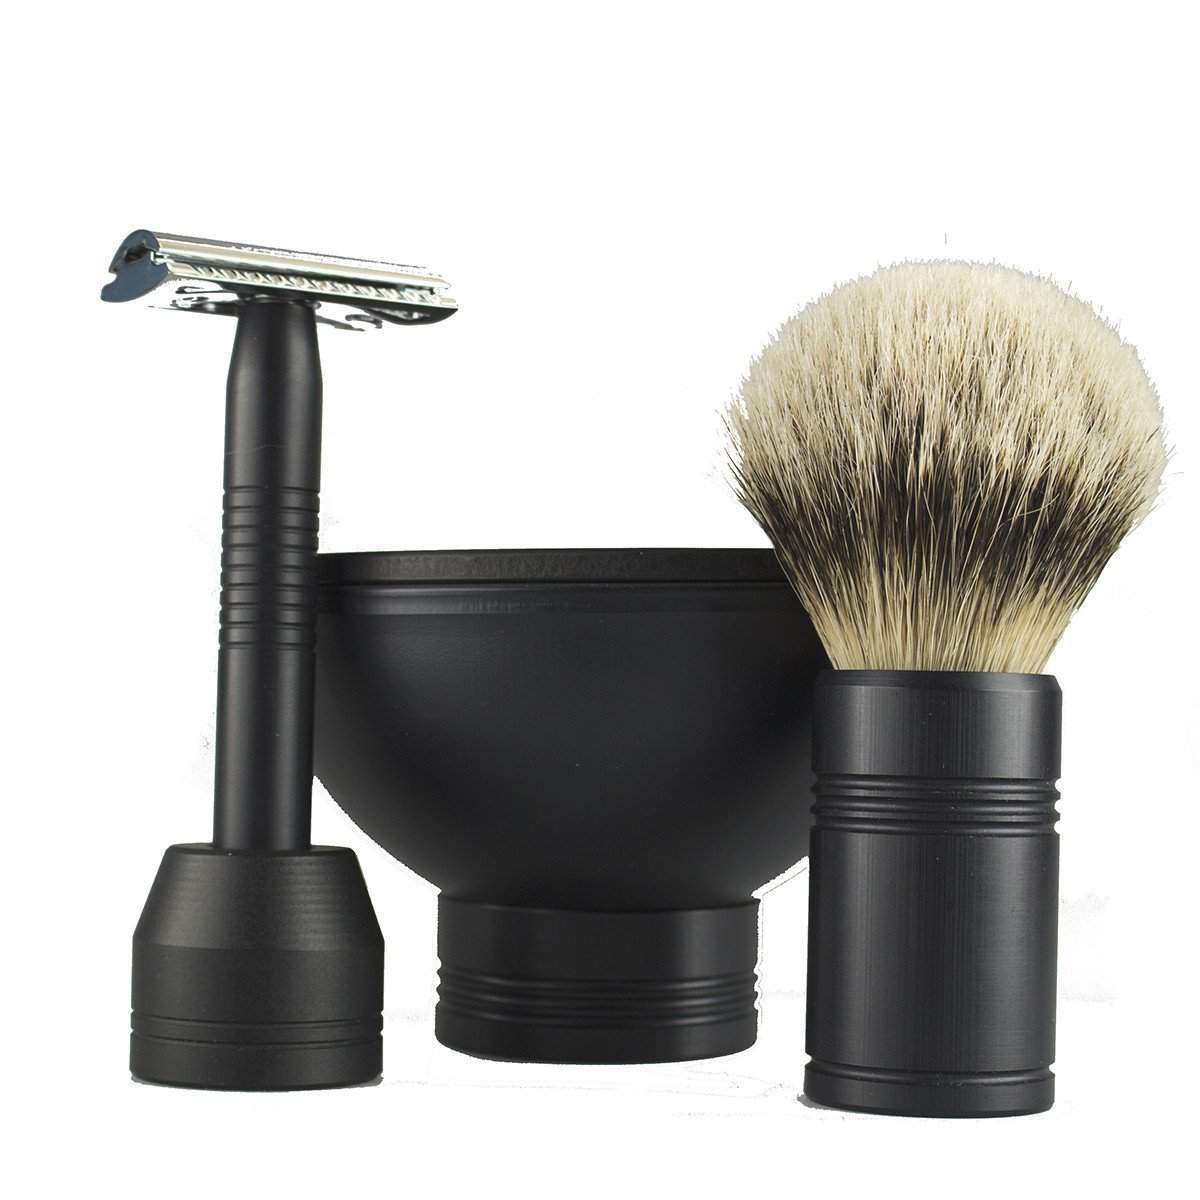 Leitch American made Complete Shave Set In Black-